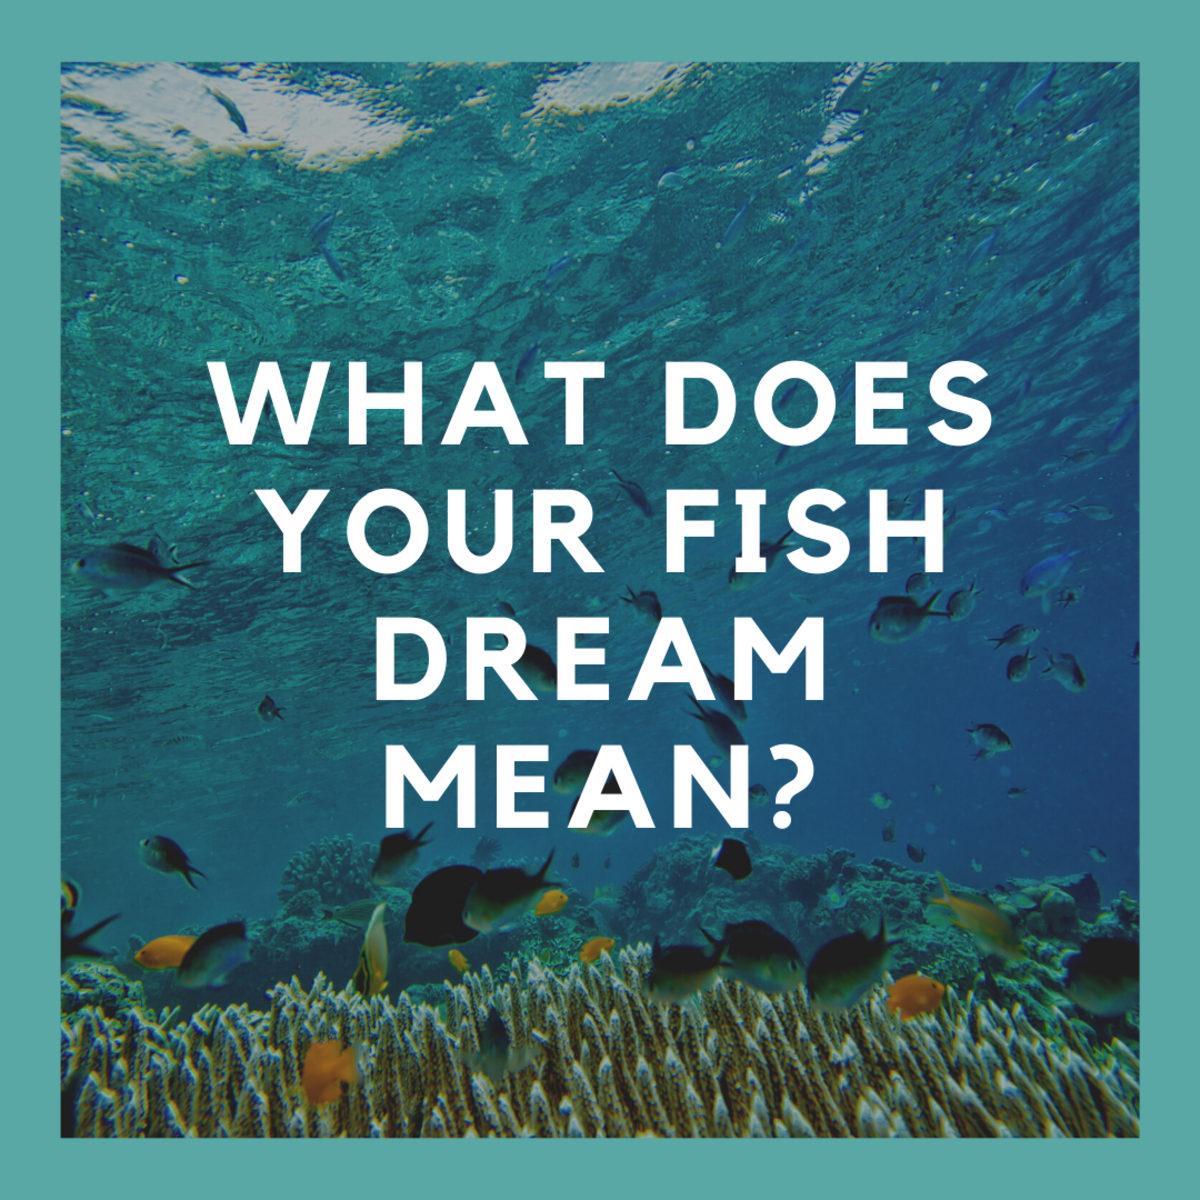 Dreaming of fish? Find out why!